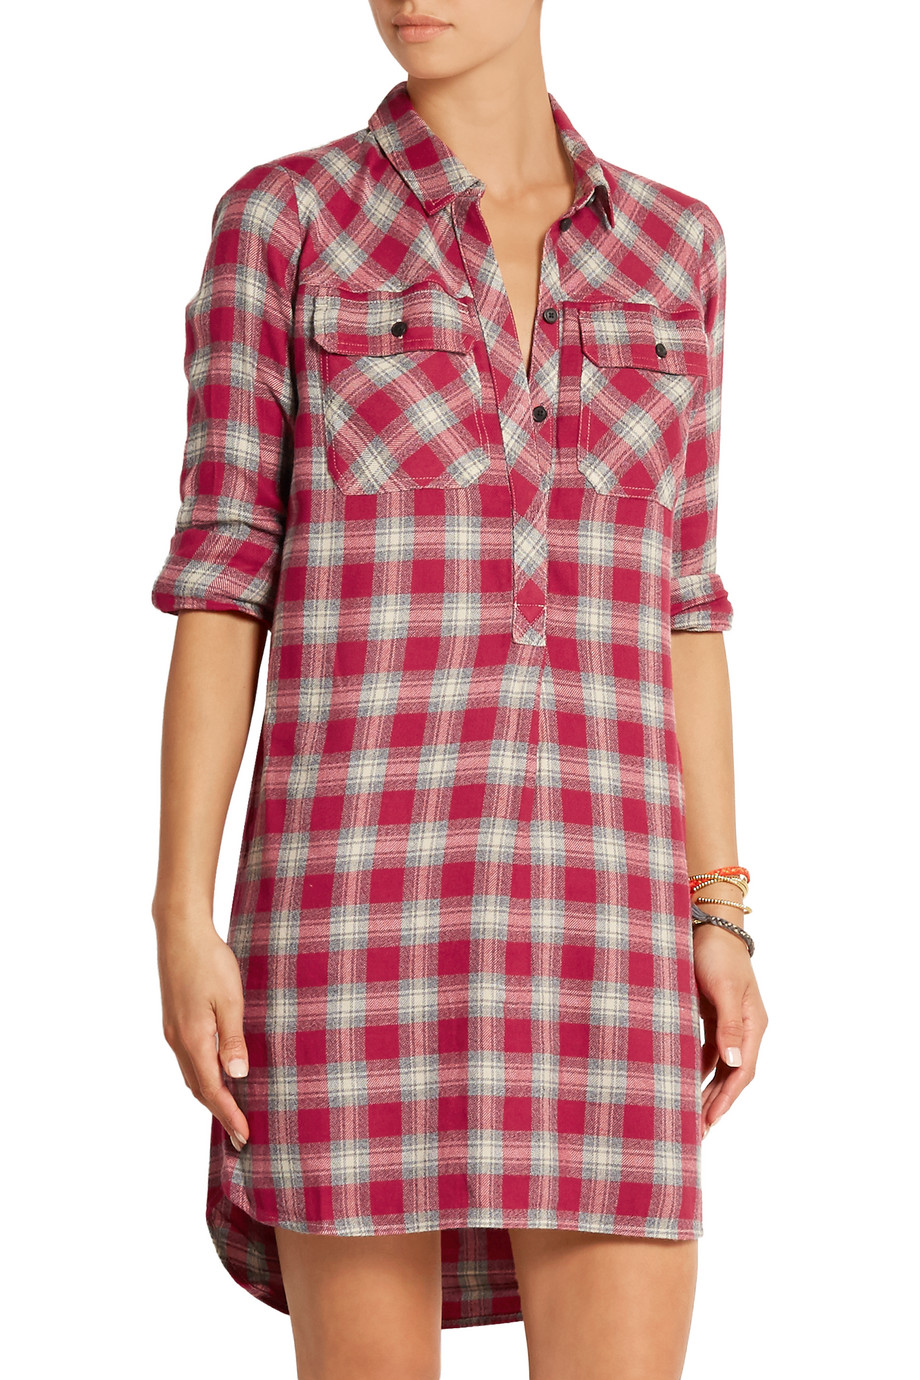 Madewell Plaid Cotton-Blend Shirt Dress, Red, Women's